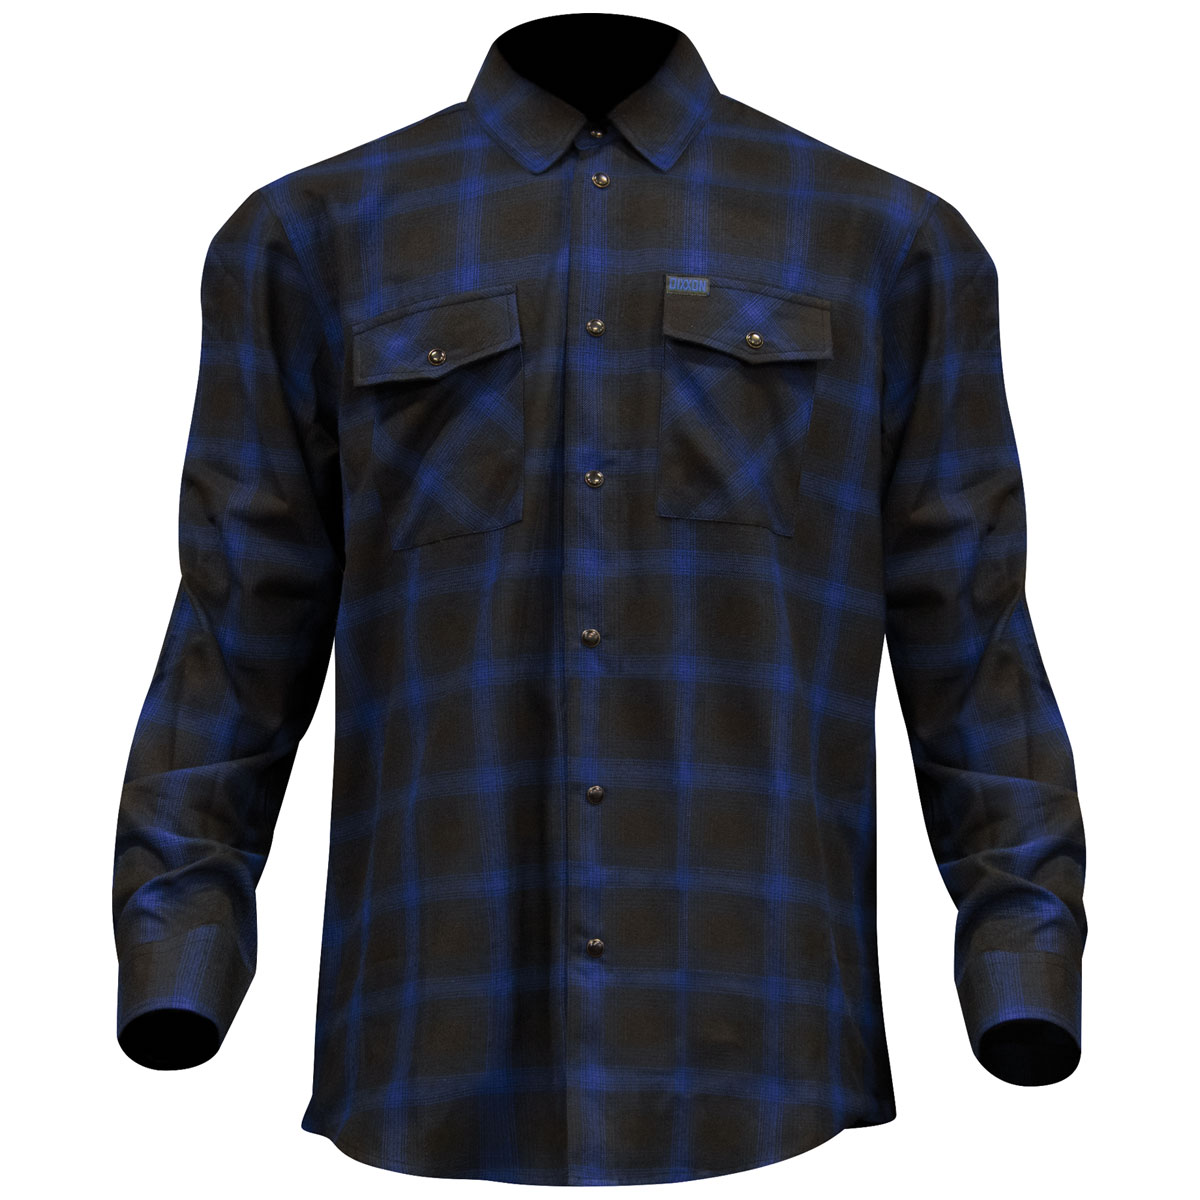 Dixxon J&P Cycles Women's The Shiner Flannel